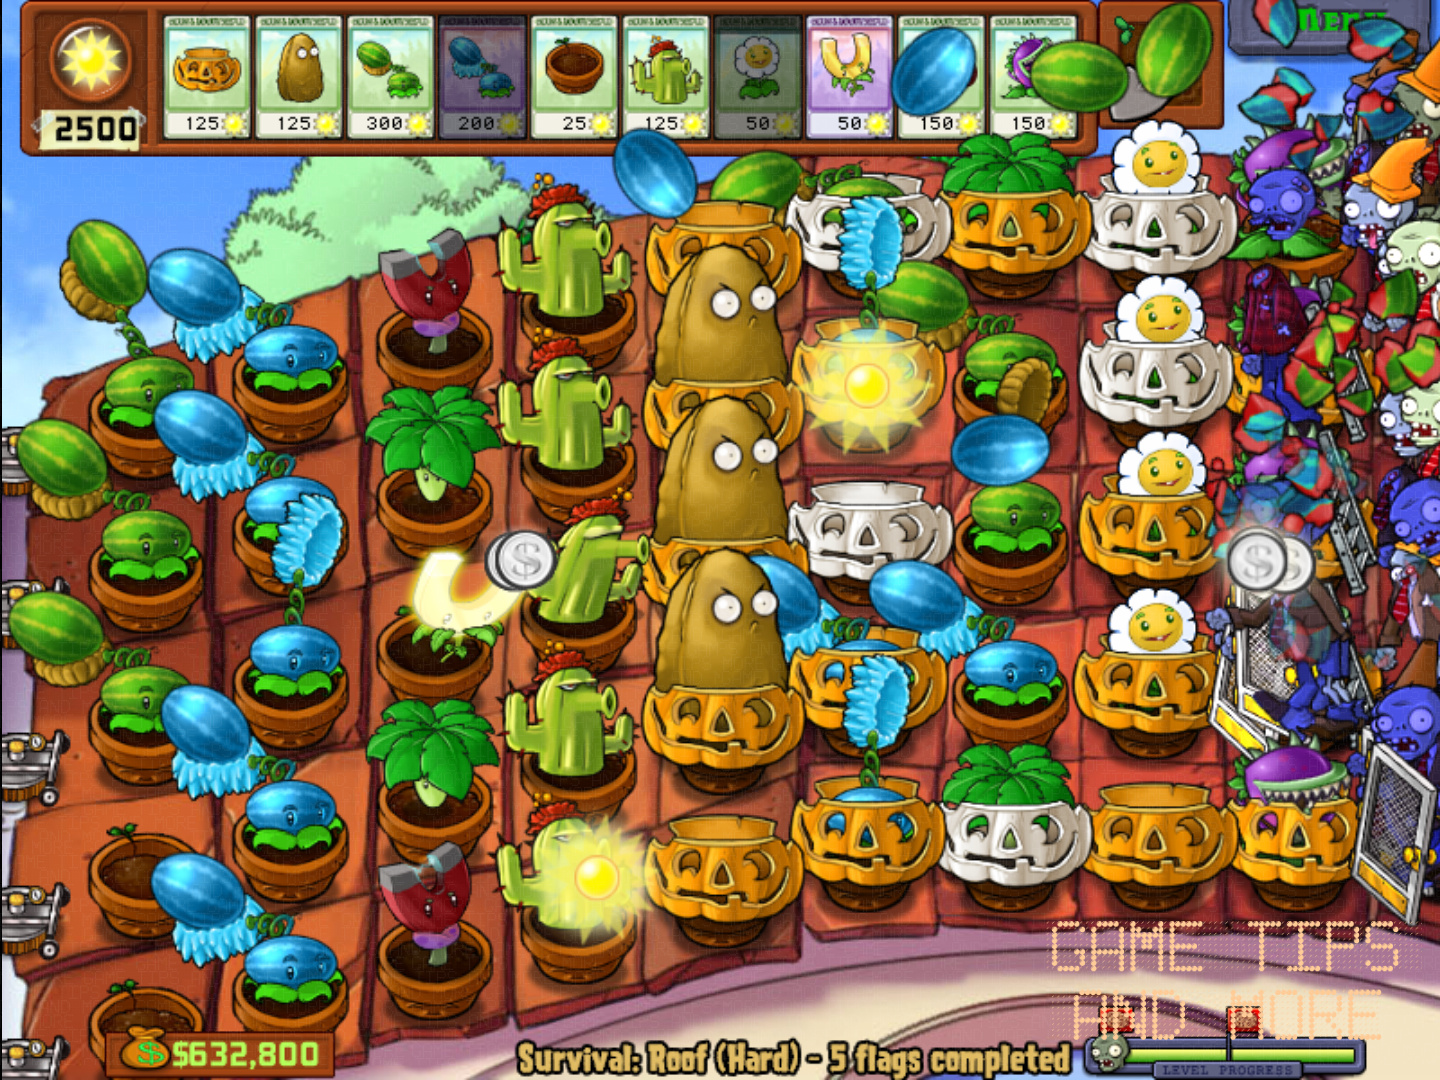 http://3.bp.blogspot.com/-M4q2LmBrgjI/T12WhBtWbxI/AAAAAAAAAik/3zCaOJj6aIY/s1600/GTAM+-+Plants+vs+Zombies+-+Survival+Roof+Hard+5th+Flag+.jpg